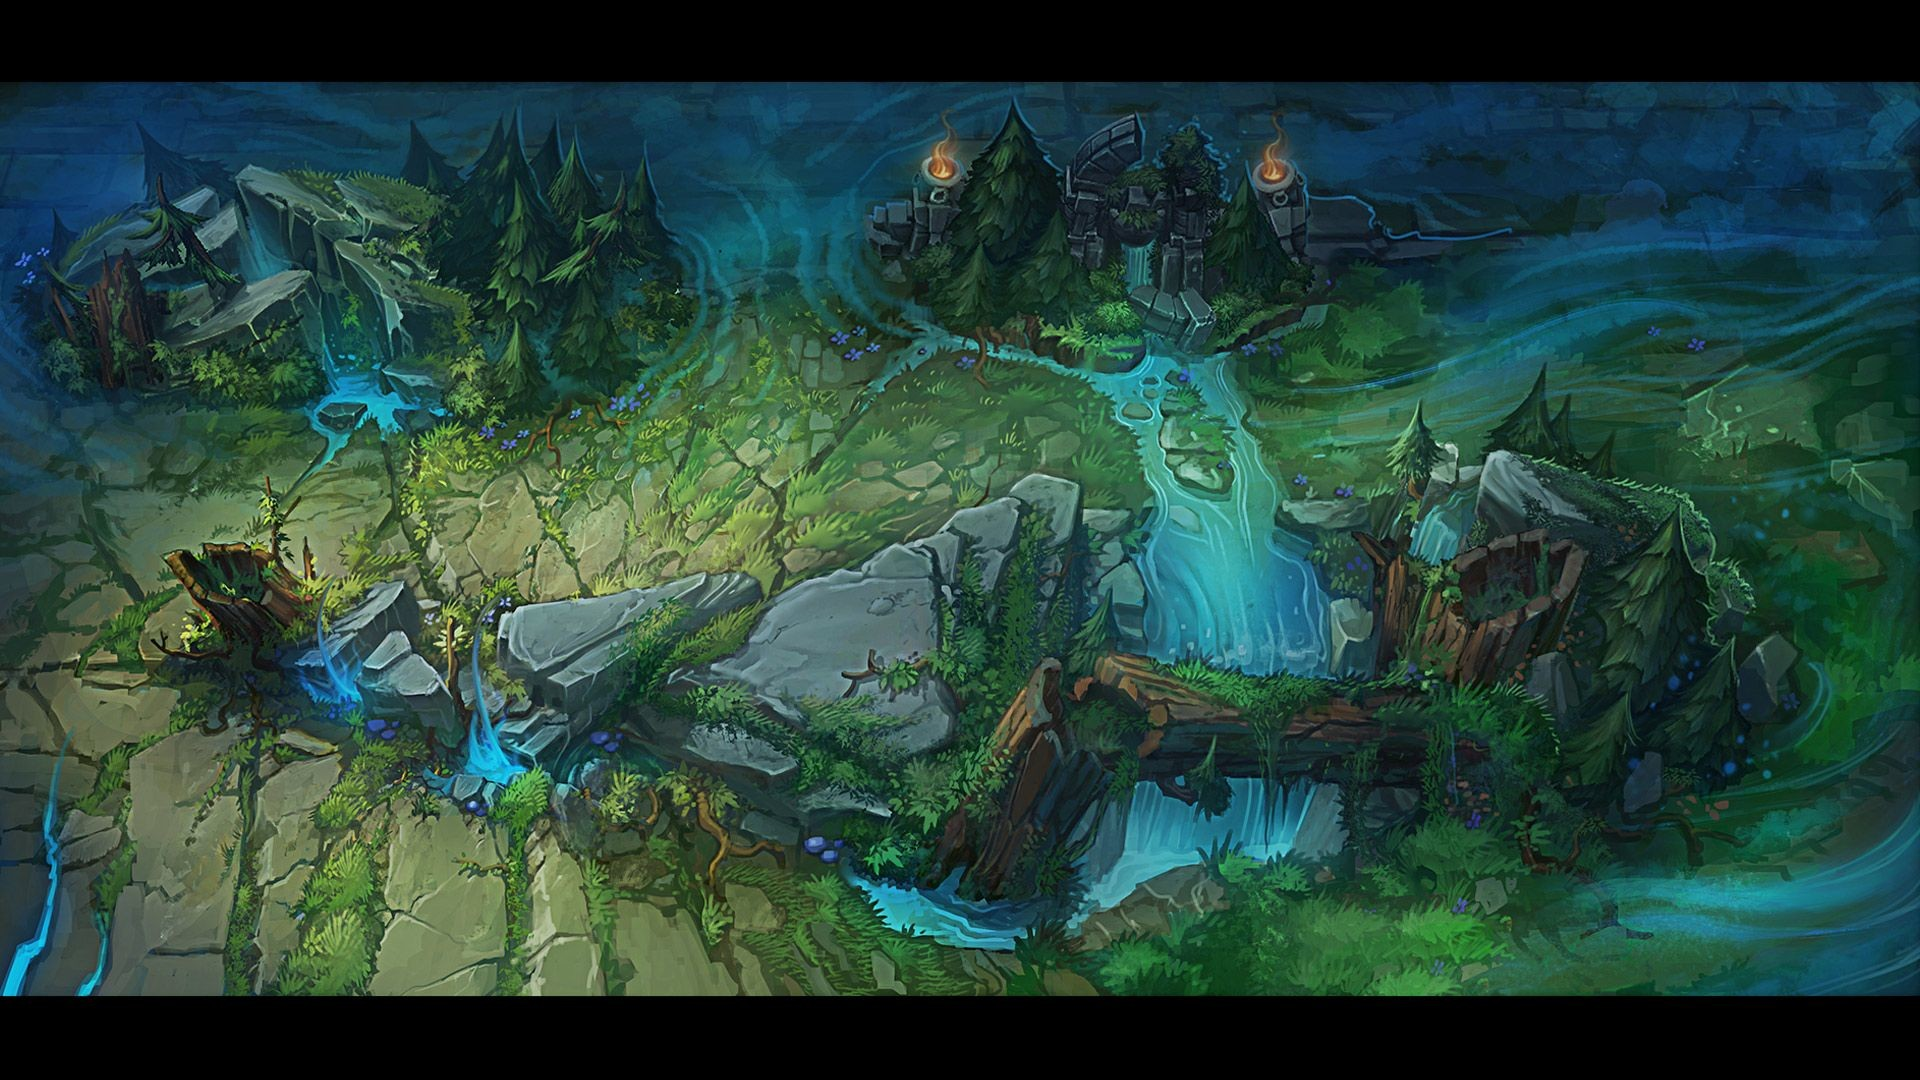 Res: 1920x1080, Check out some Summoner's Rift concept art! | League of Legends